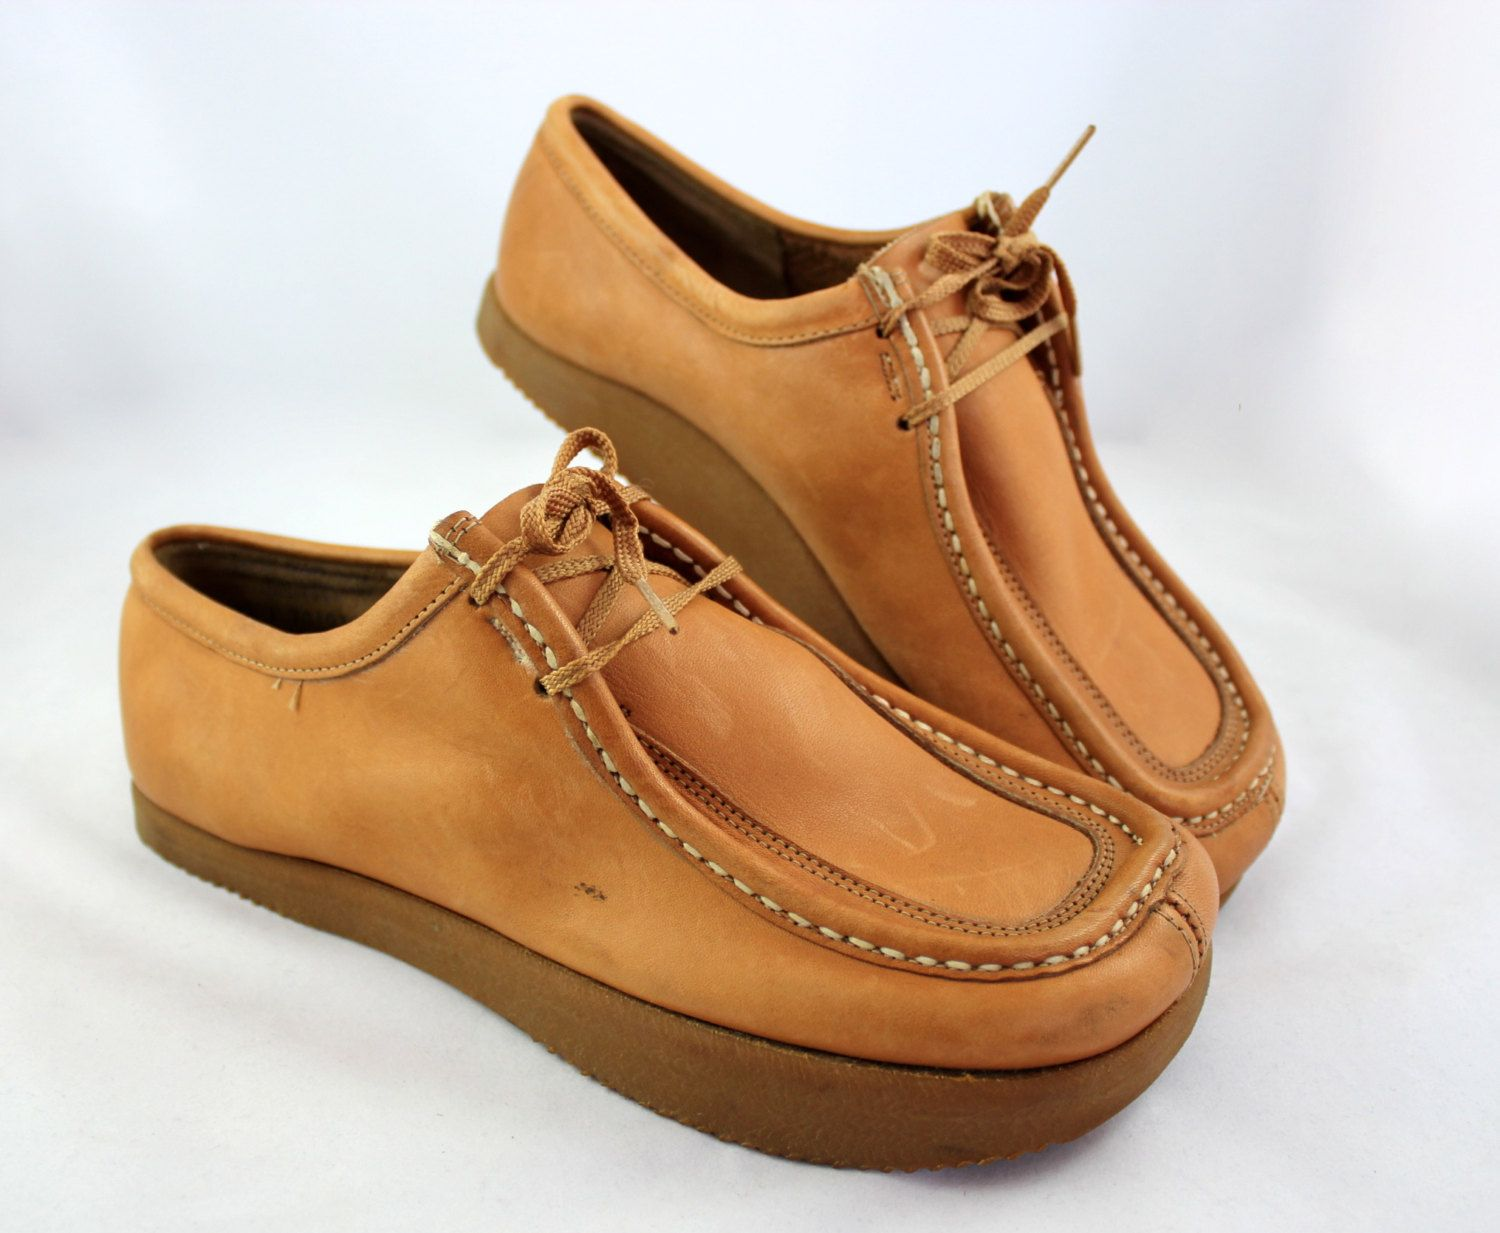 Vintage Lindsay Weir Earth Shoes by ANNE KALSO in Honey Leather. Holy cow I  remember